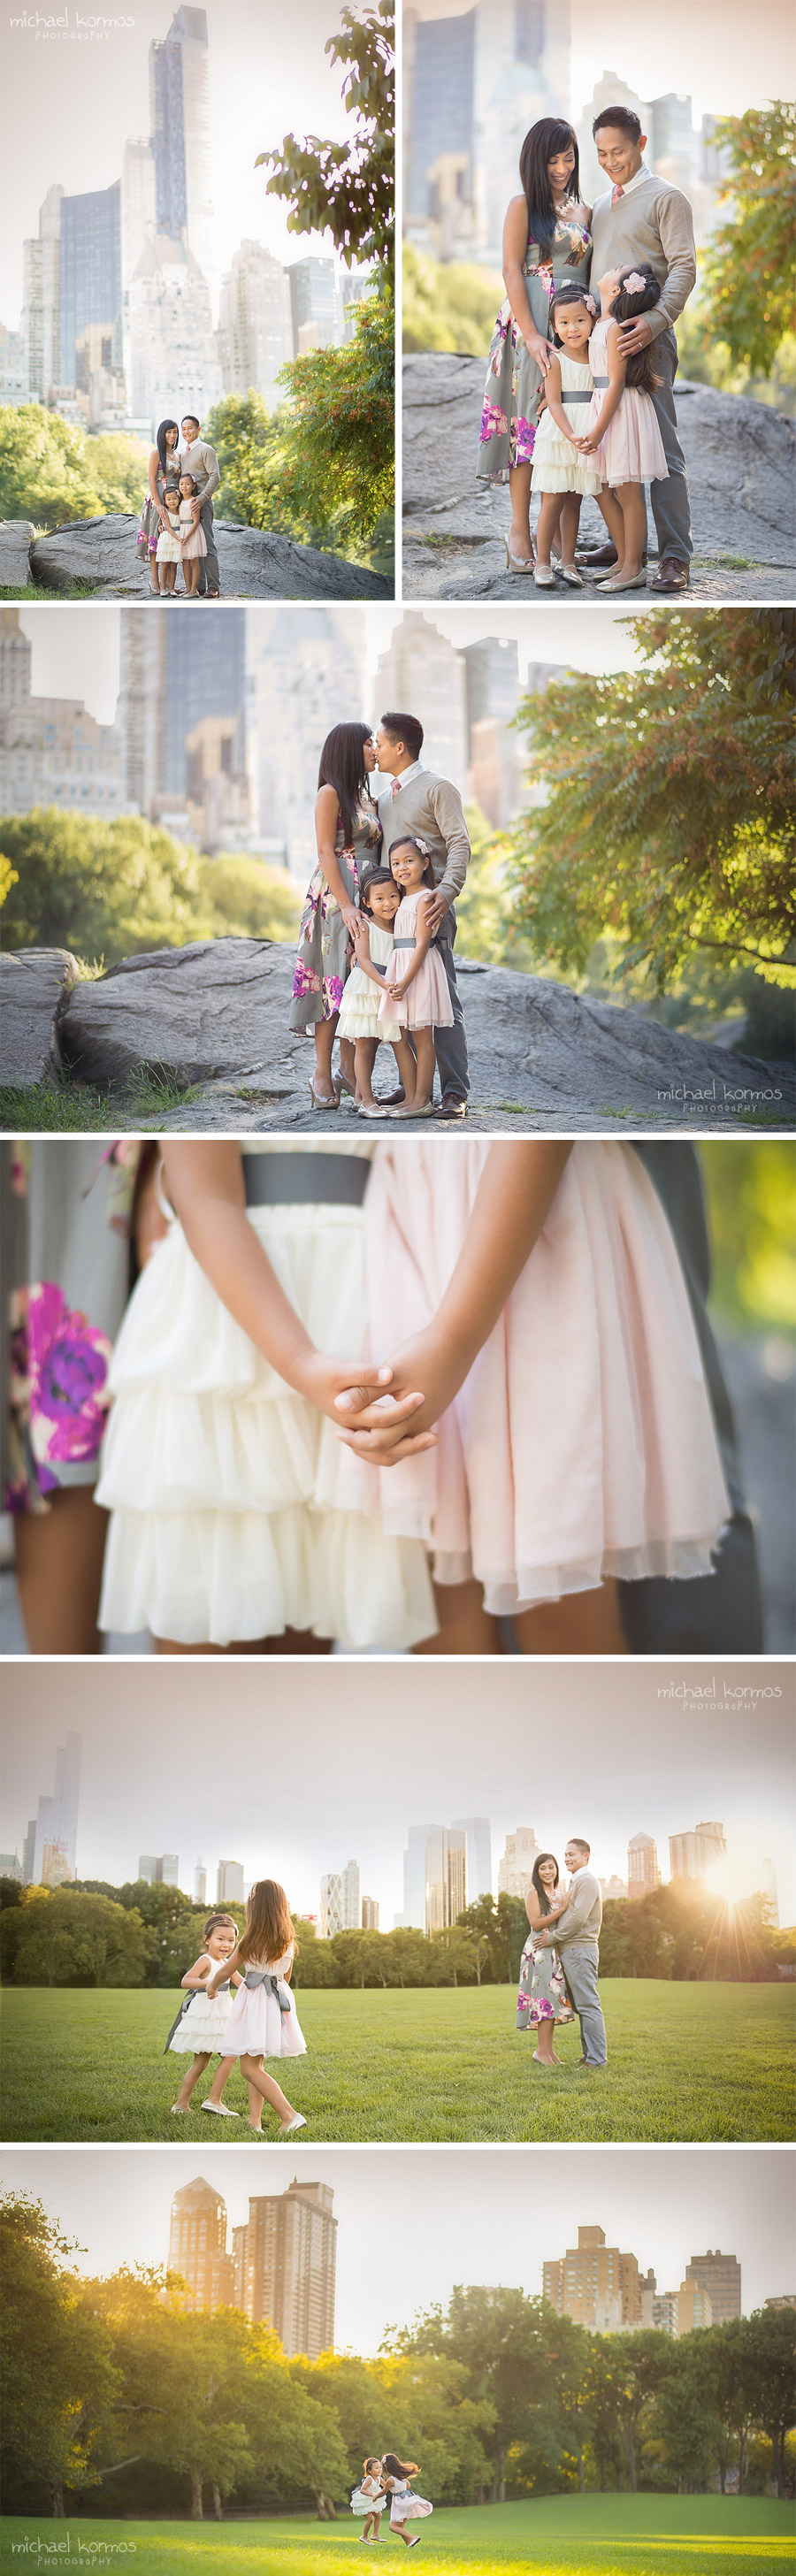 family photographer capturing moments in central park